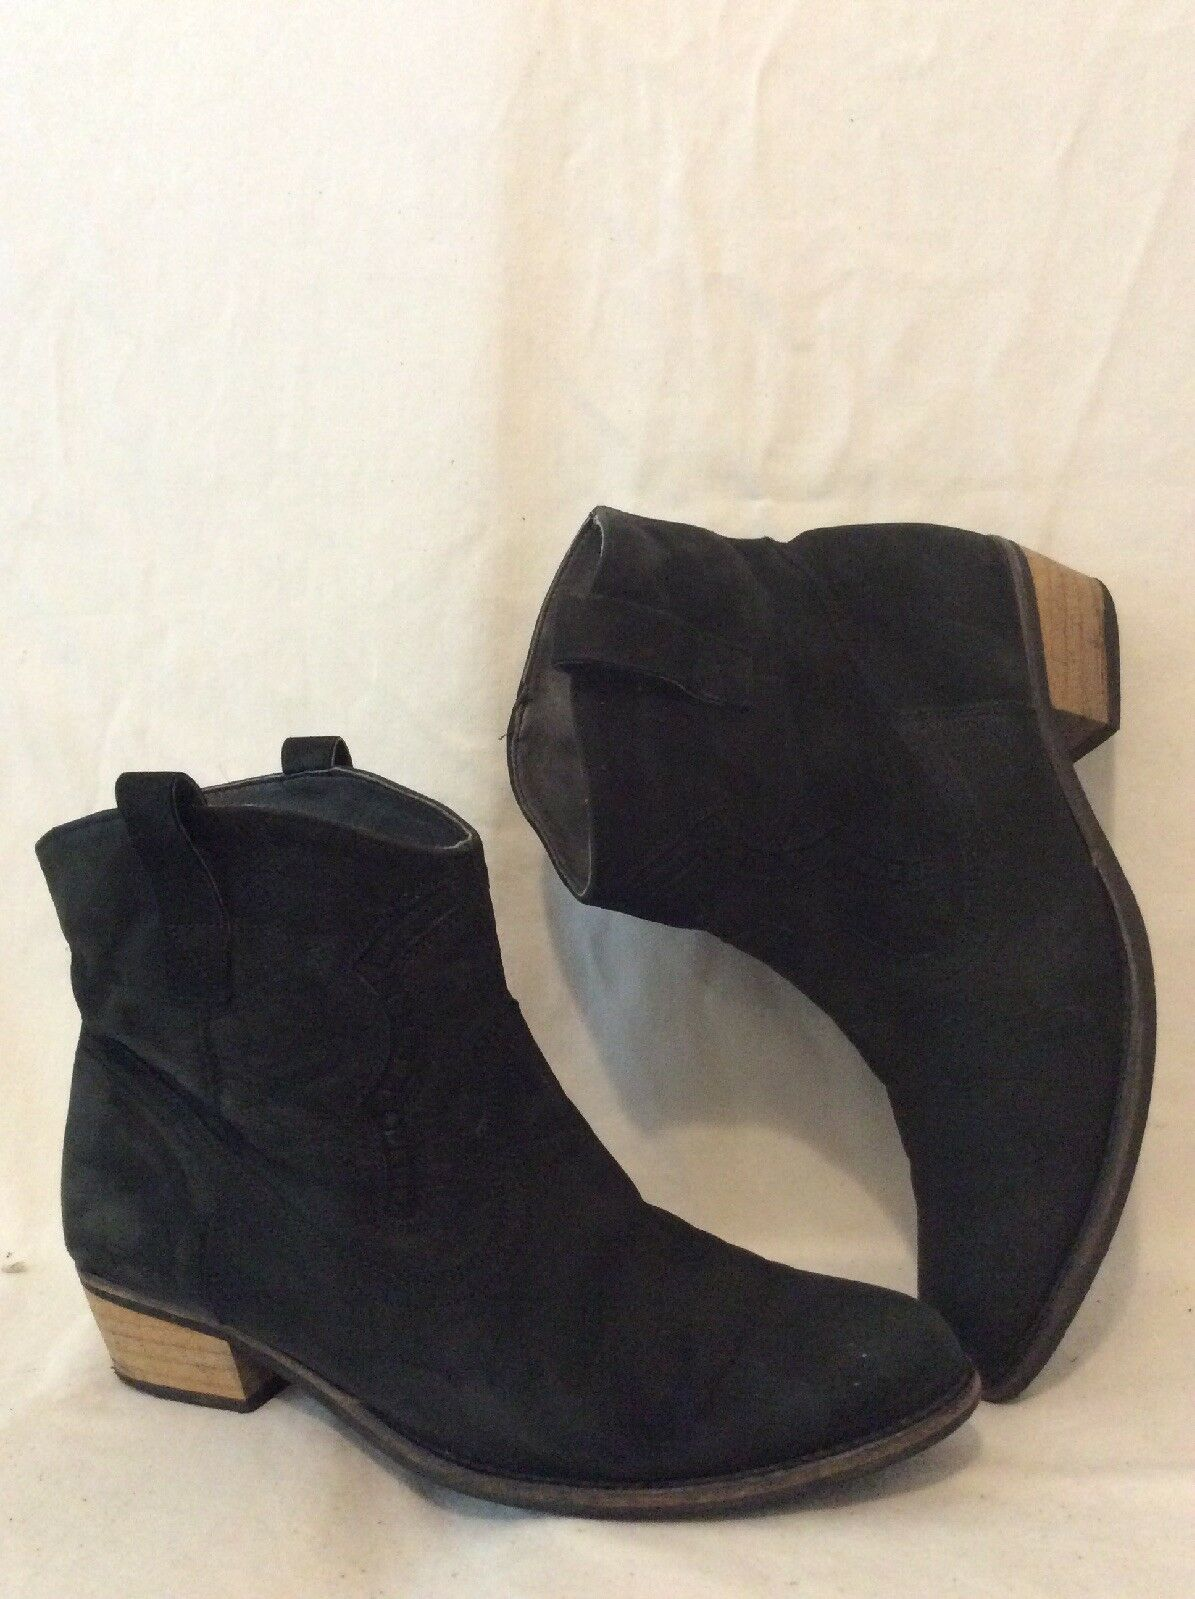 Ladies Black Ankle Leather Boots Size 6